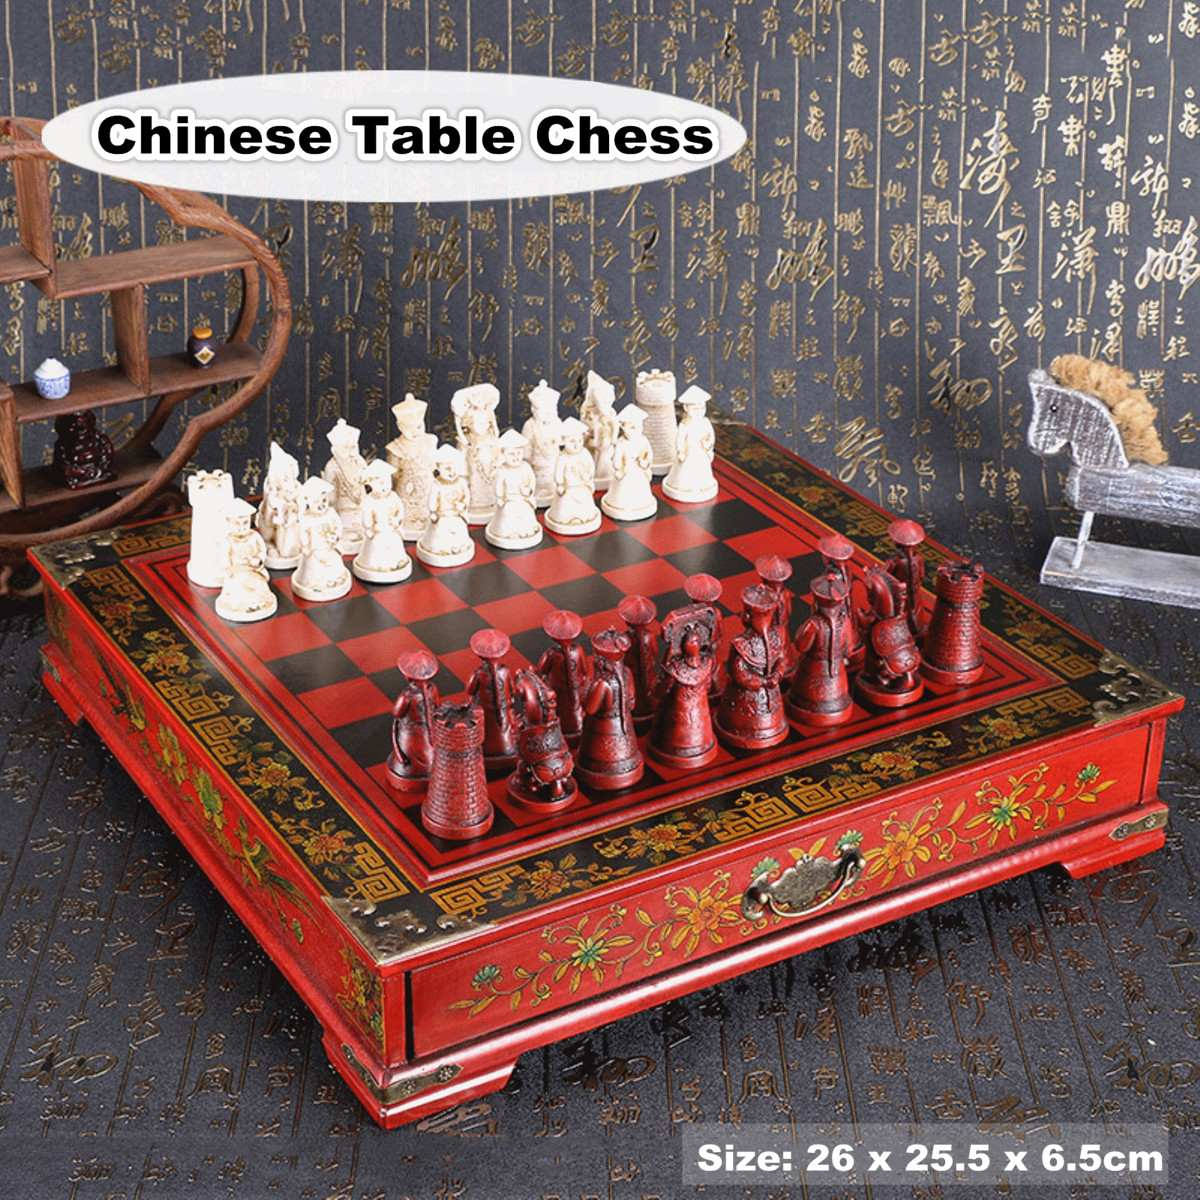 32Pcs/Set Wood Chess Chinese Retro Terracotta Chessman Chess Wood Do Old Carving Resin Chessman Birthday Christmas Gift